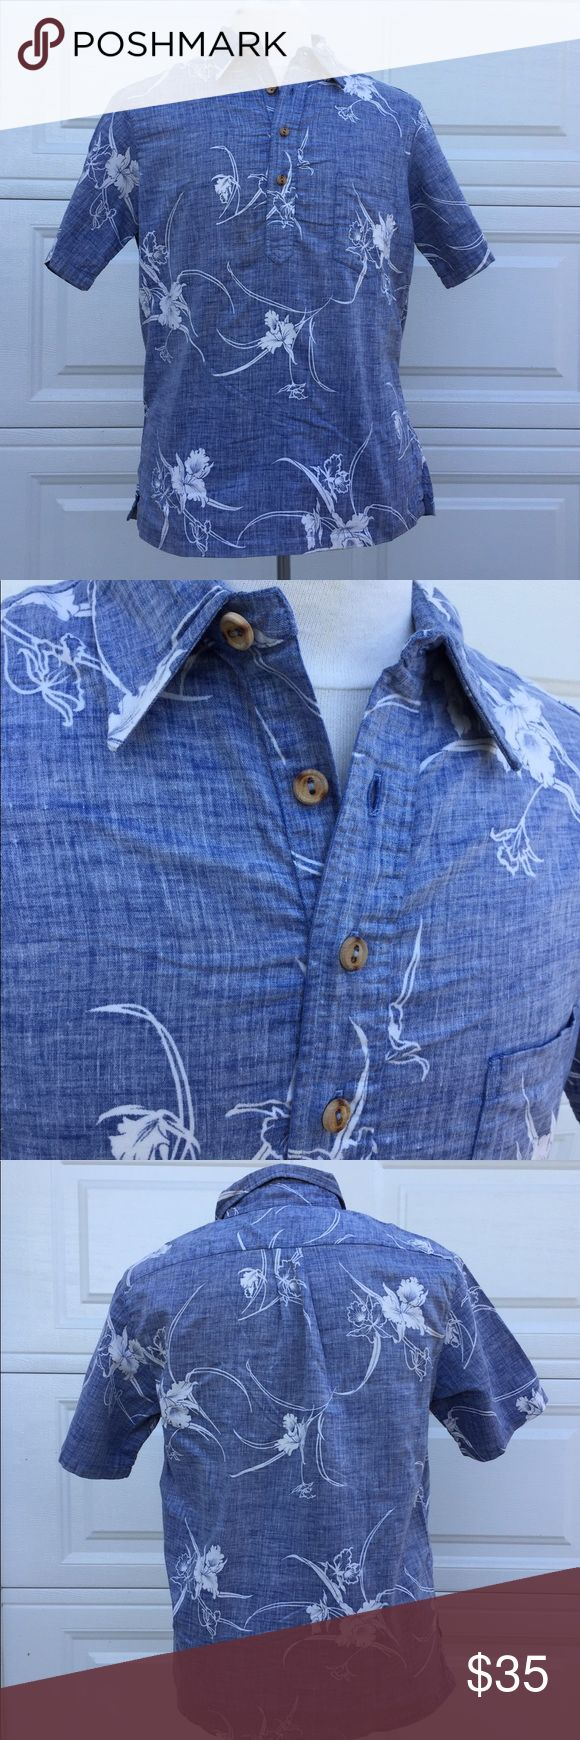 PK PRINCE KUHIO Short sleeve Hawaiian 🌺 Shirt - L PK PRINCE KUHIO Blue/White Short sleeve 4 button collar, 1 front chest pocket Hawaiian 🌺 Shirt. Made in Hawaii 👍🏽  Size: Large, 100% Cotton  Very nice white floral pattern on blue background. Made in Hawaii. If it fit me I wouldn't be getting rid of this one. Hoping it finds a good home 😎👍🏽.   Gently used in good condition. (Clean, smoke free, pet free home) Prince Kuhio Shirts Casual Button Down Shirts